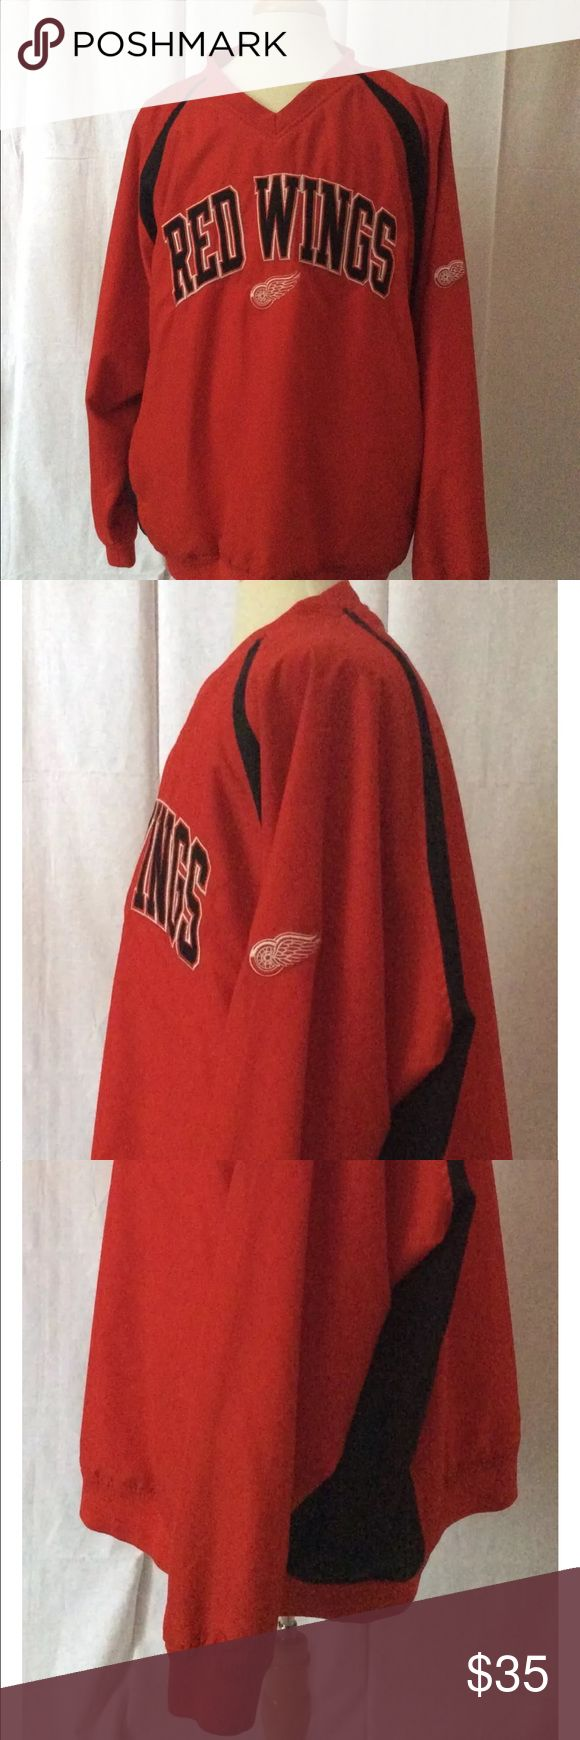 """Detroit Red Wings Men's Pullover Windbreaker  2XL Detroit Redwings Windbreaker. The size is a 2XL. Type: JacketStyle:WindbreakerBrand:NHLMaterial:100% PolyesterColor: RedMeasurements:Pit To Pit - 30 1/4""""             Sleeve Length - http://www.99wtf.net/men/mens-fasion/casual-guide-black-men-african-fashion-2016/"""